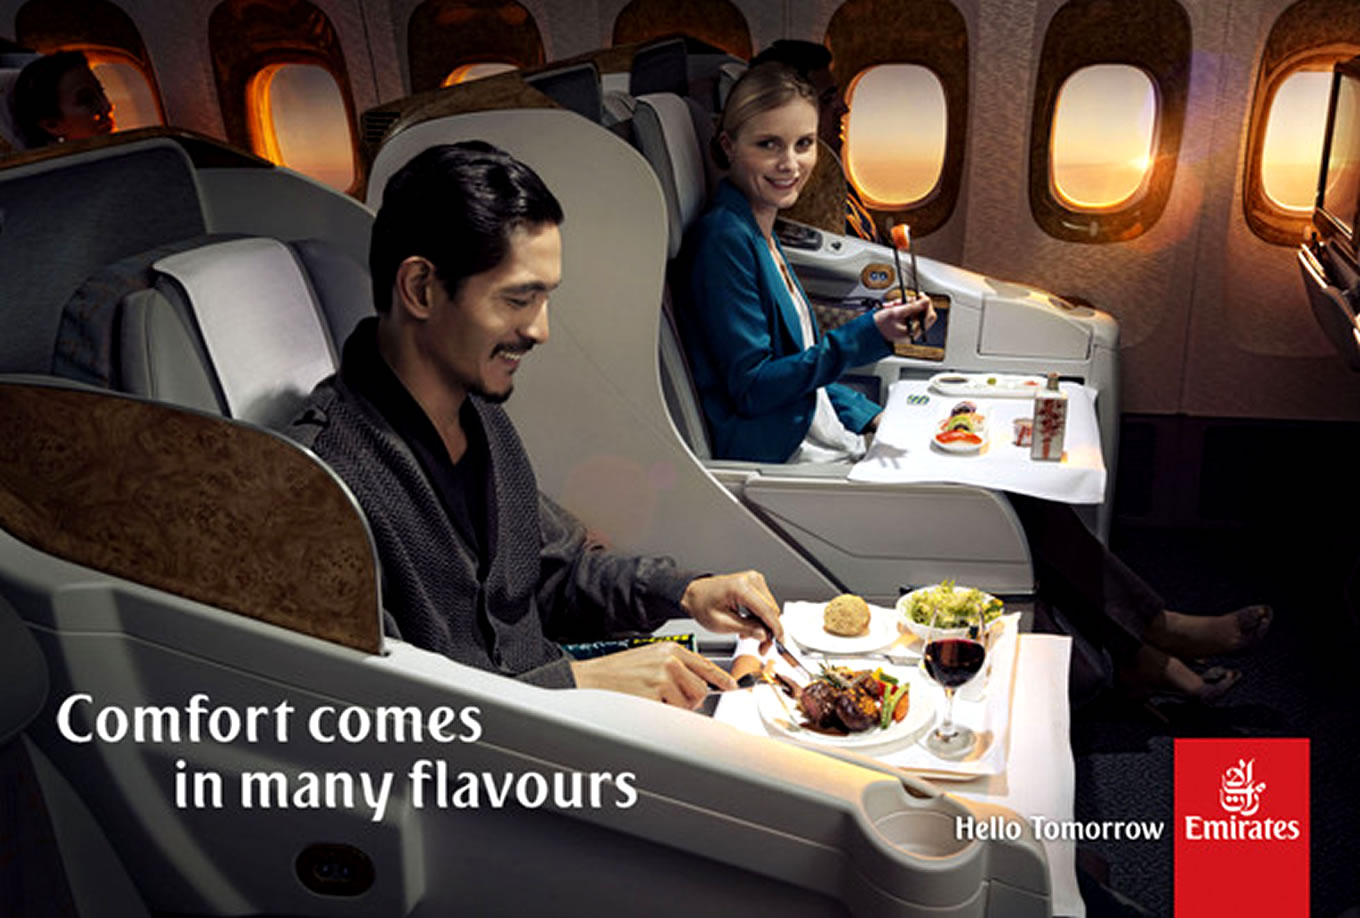 Comfort in Many Flavors, Hello Tomorrow Marketing Campaign by Emirates Airlines